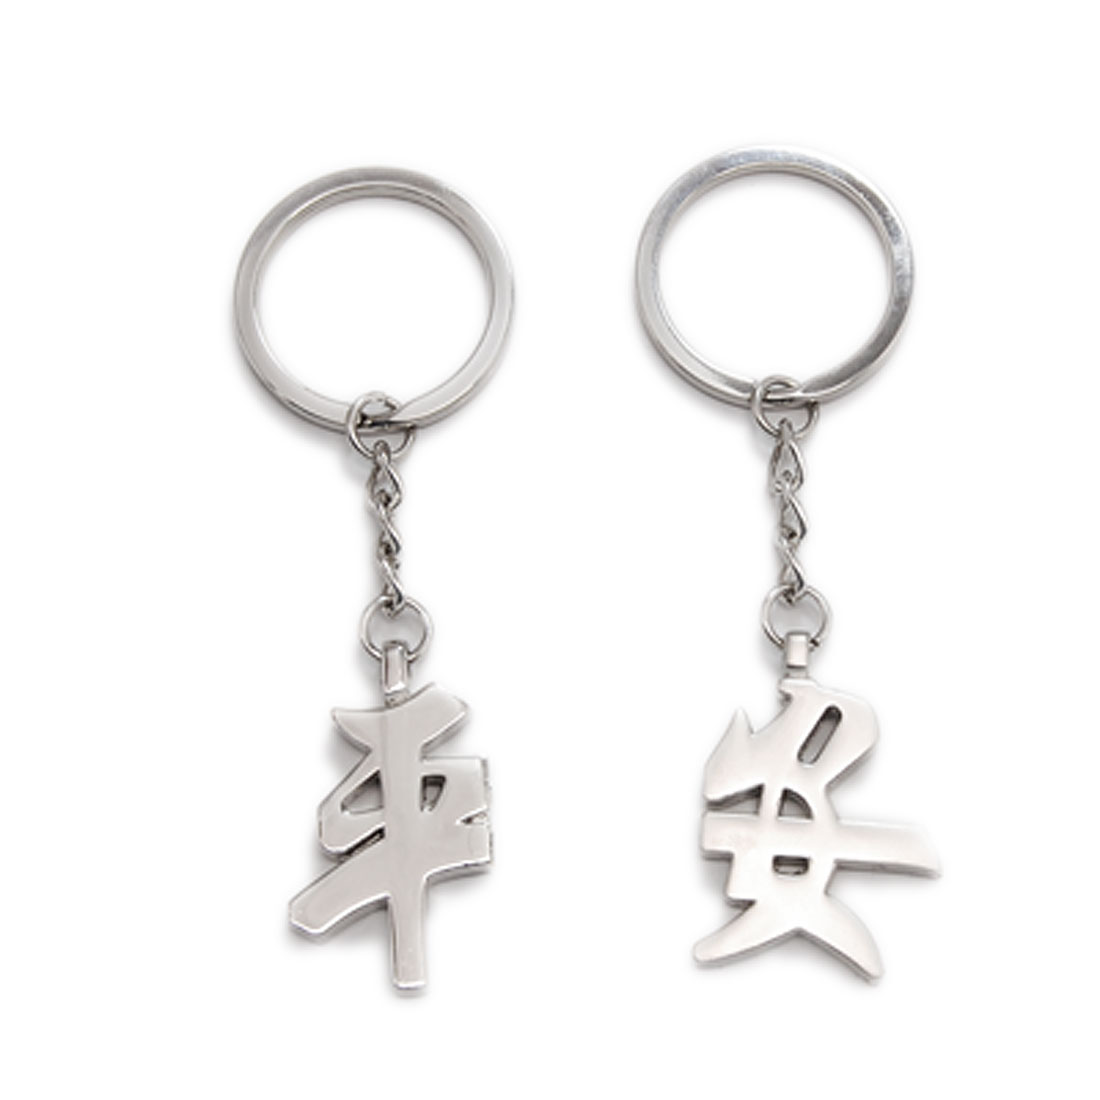 Set of 2 Chinese Characters Safe Alloy Couple Keychain